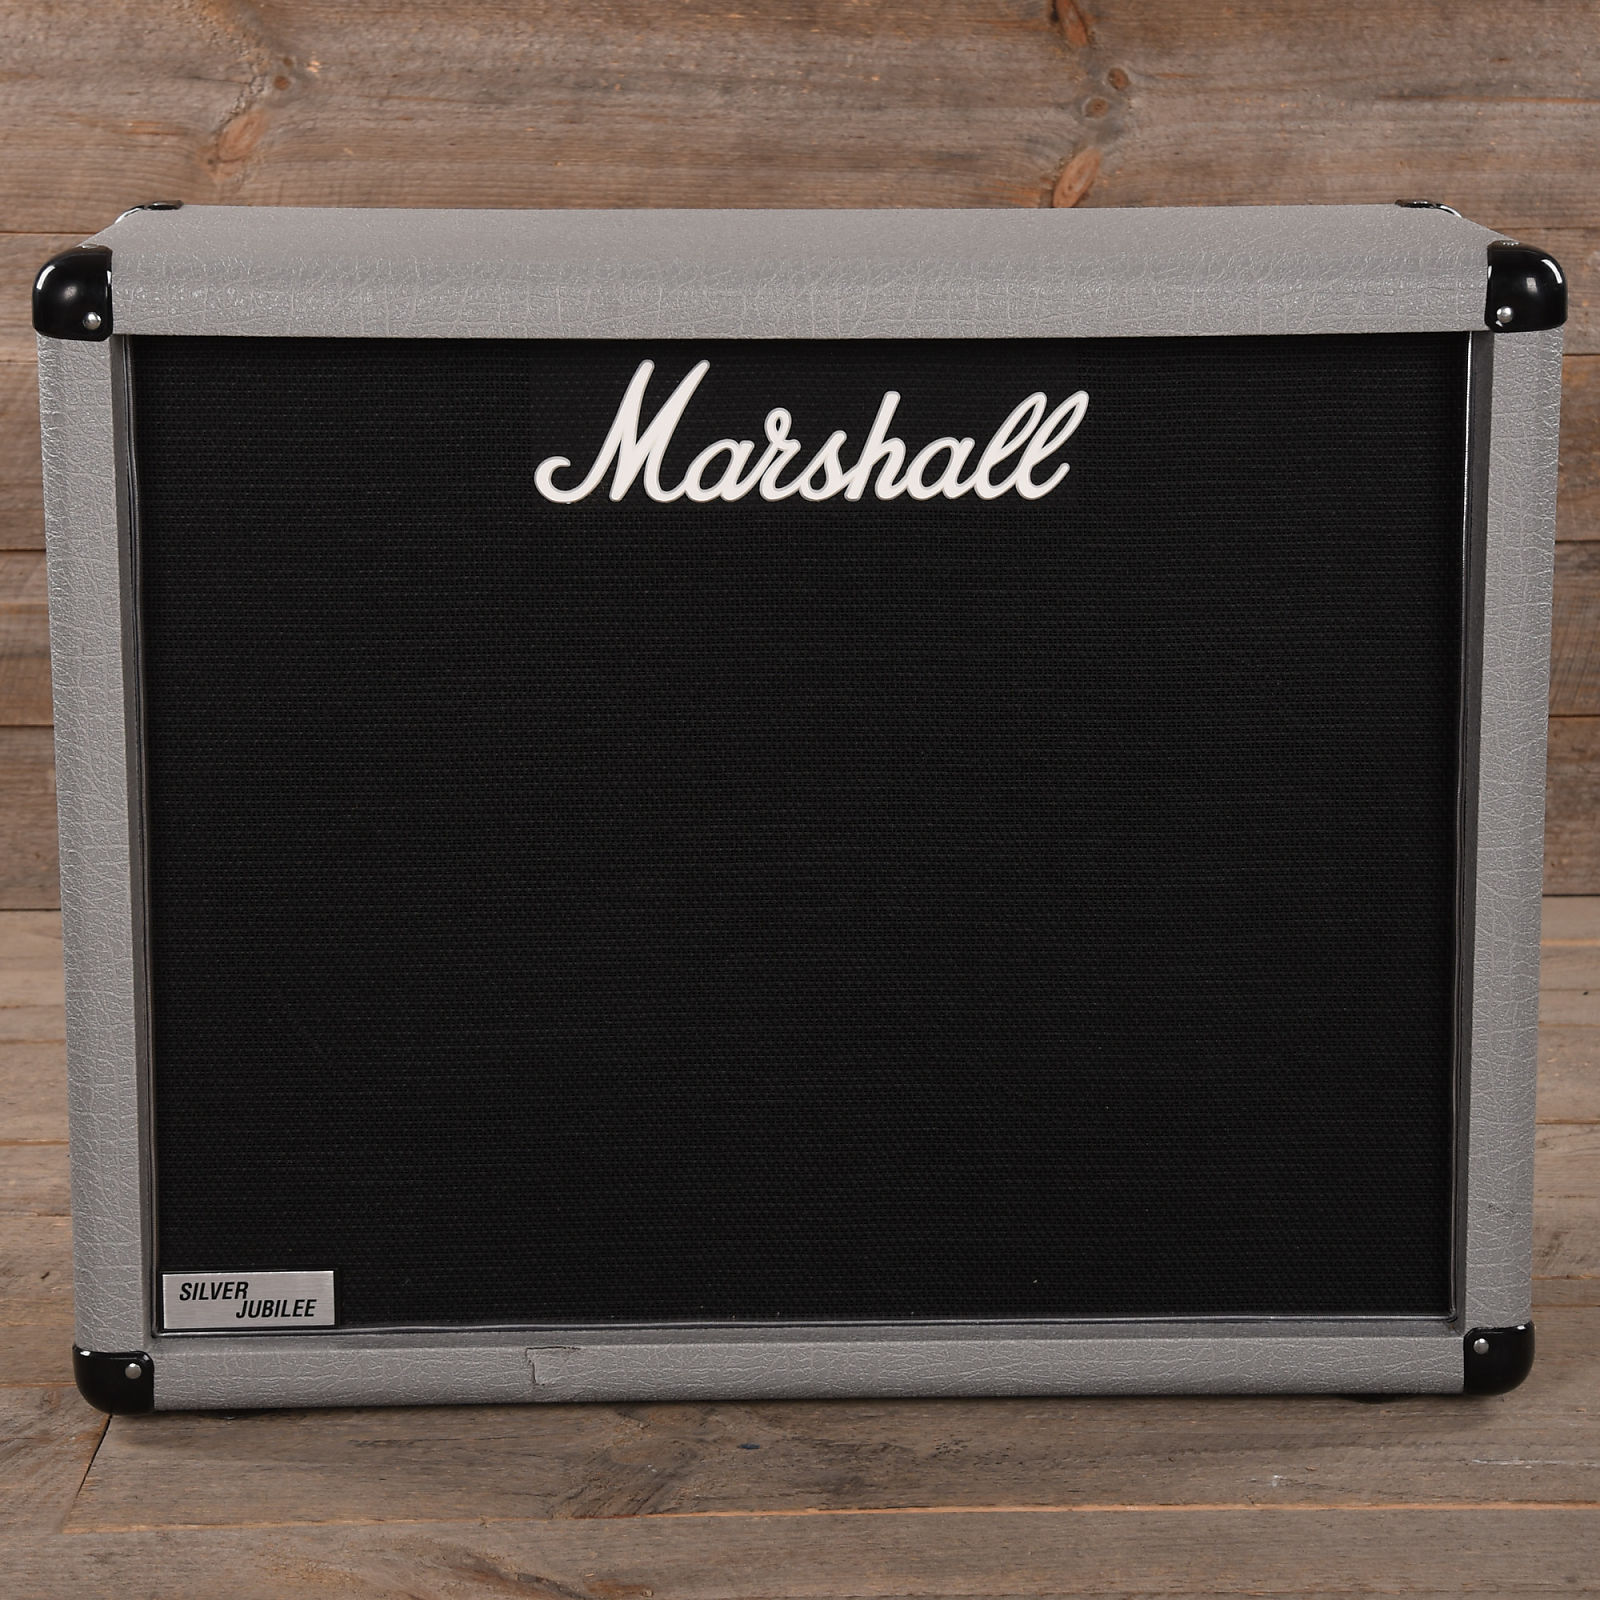 Marshall 50th Anniversary 2536 Silver Jubilee Reissue 2x12 Speaker Cabinet  USED